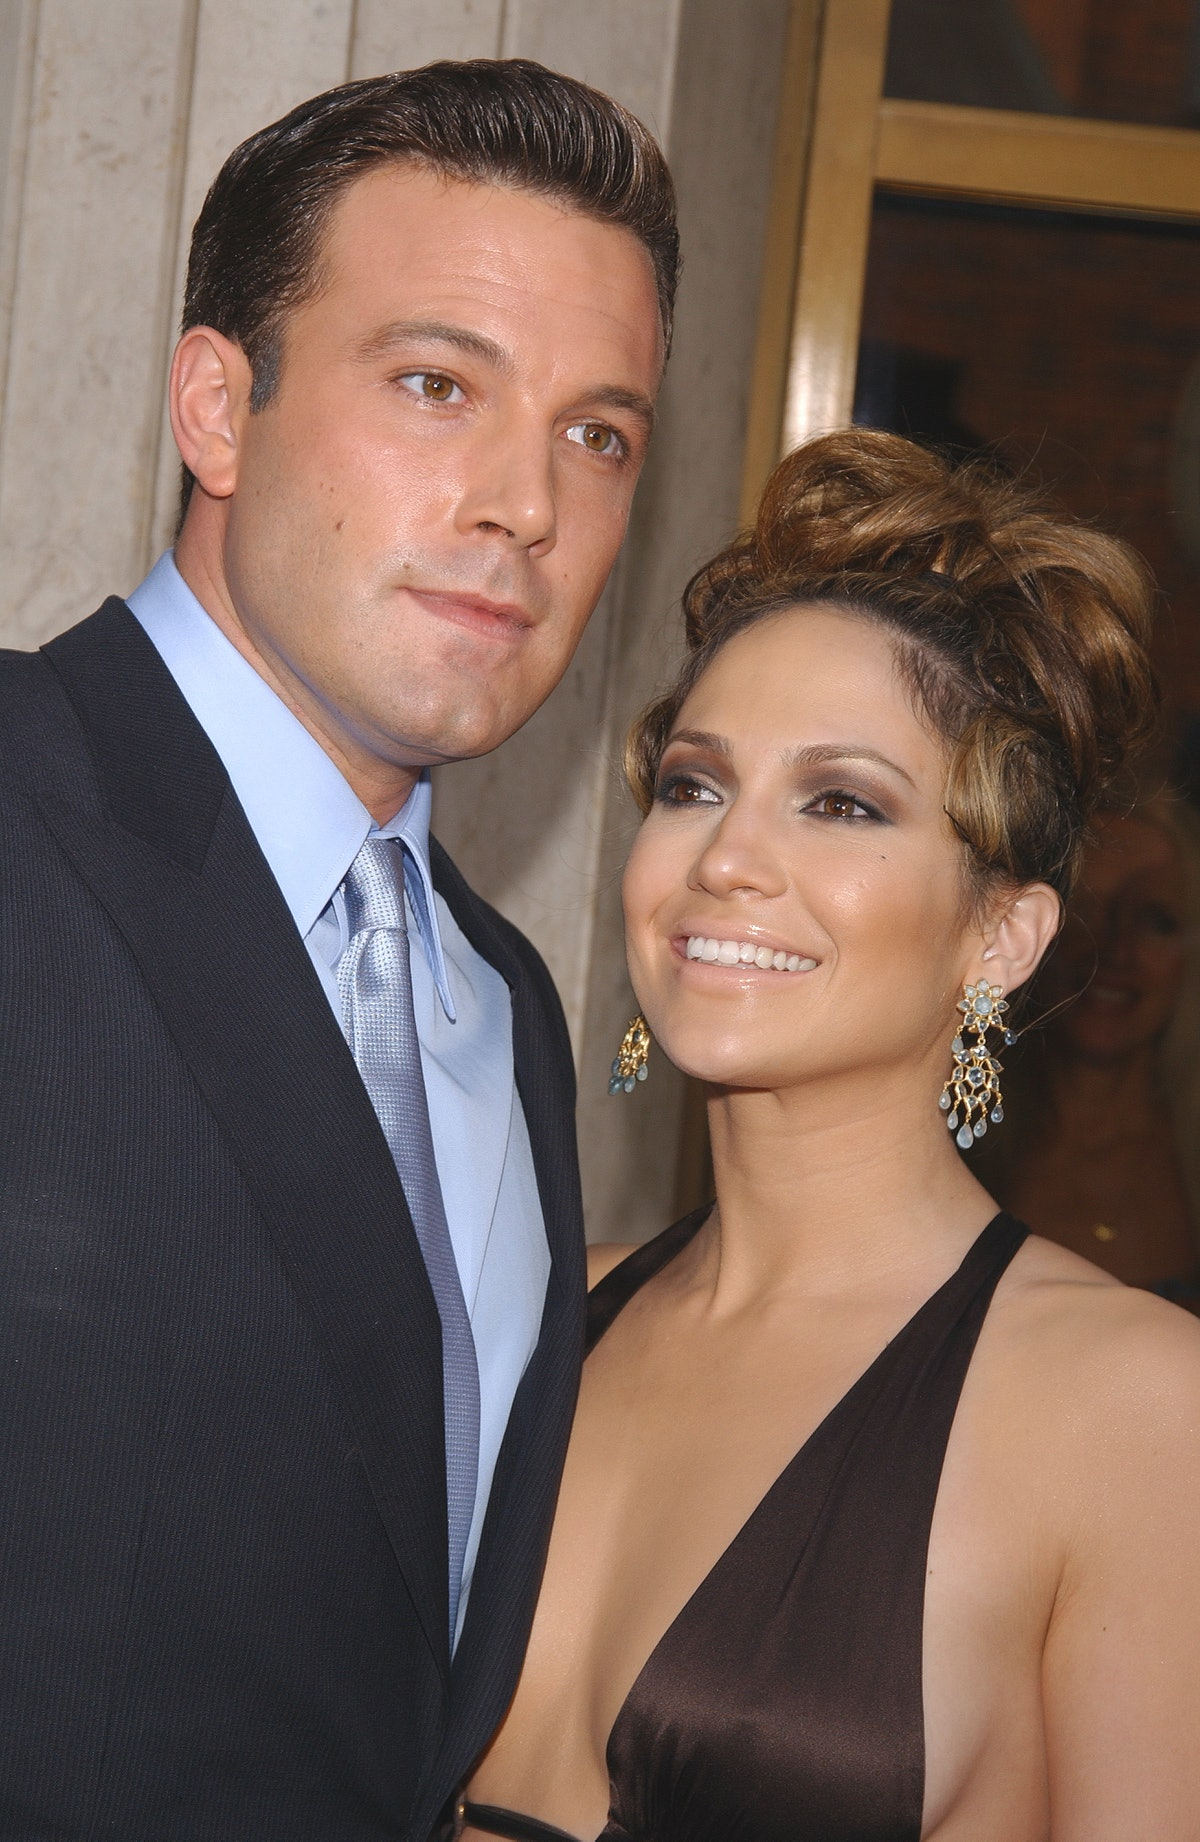 """Ben Affleck and Jennifer Lopez arriving at the premiere of """"Gigli"""". (Photo by Frank Trapper/Corbis via Getty Images)"""